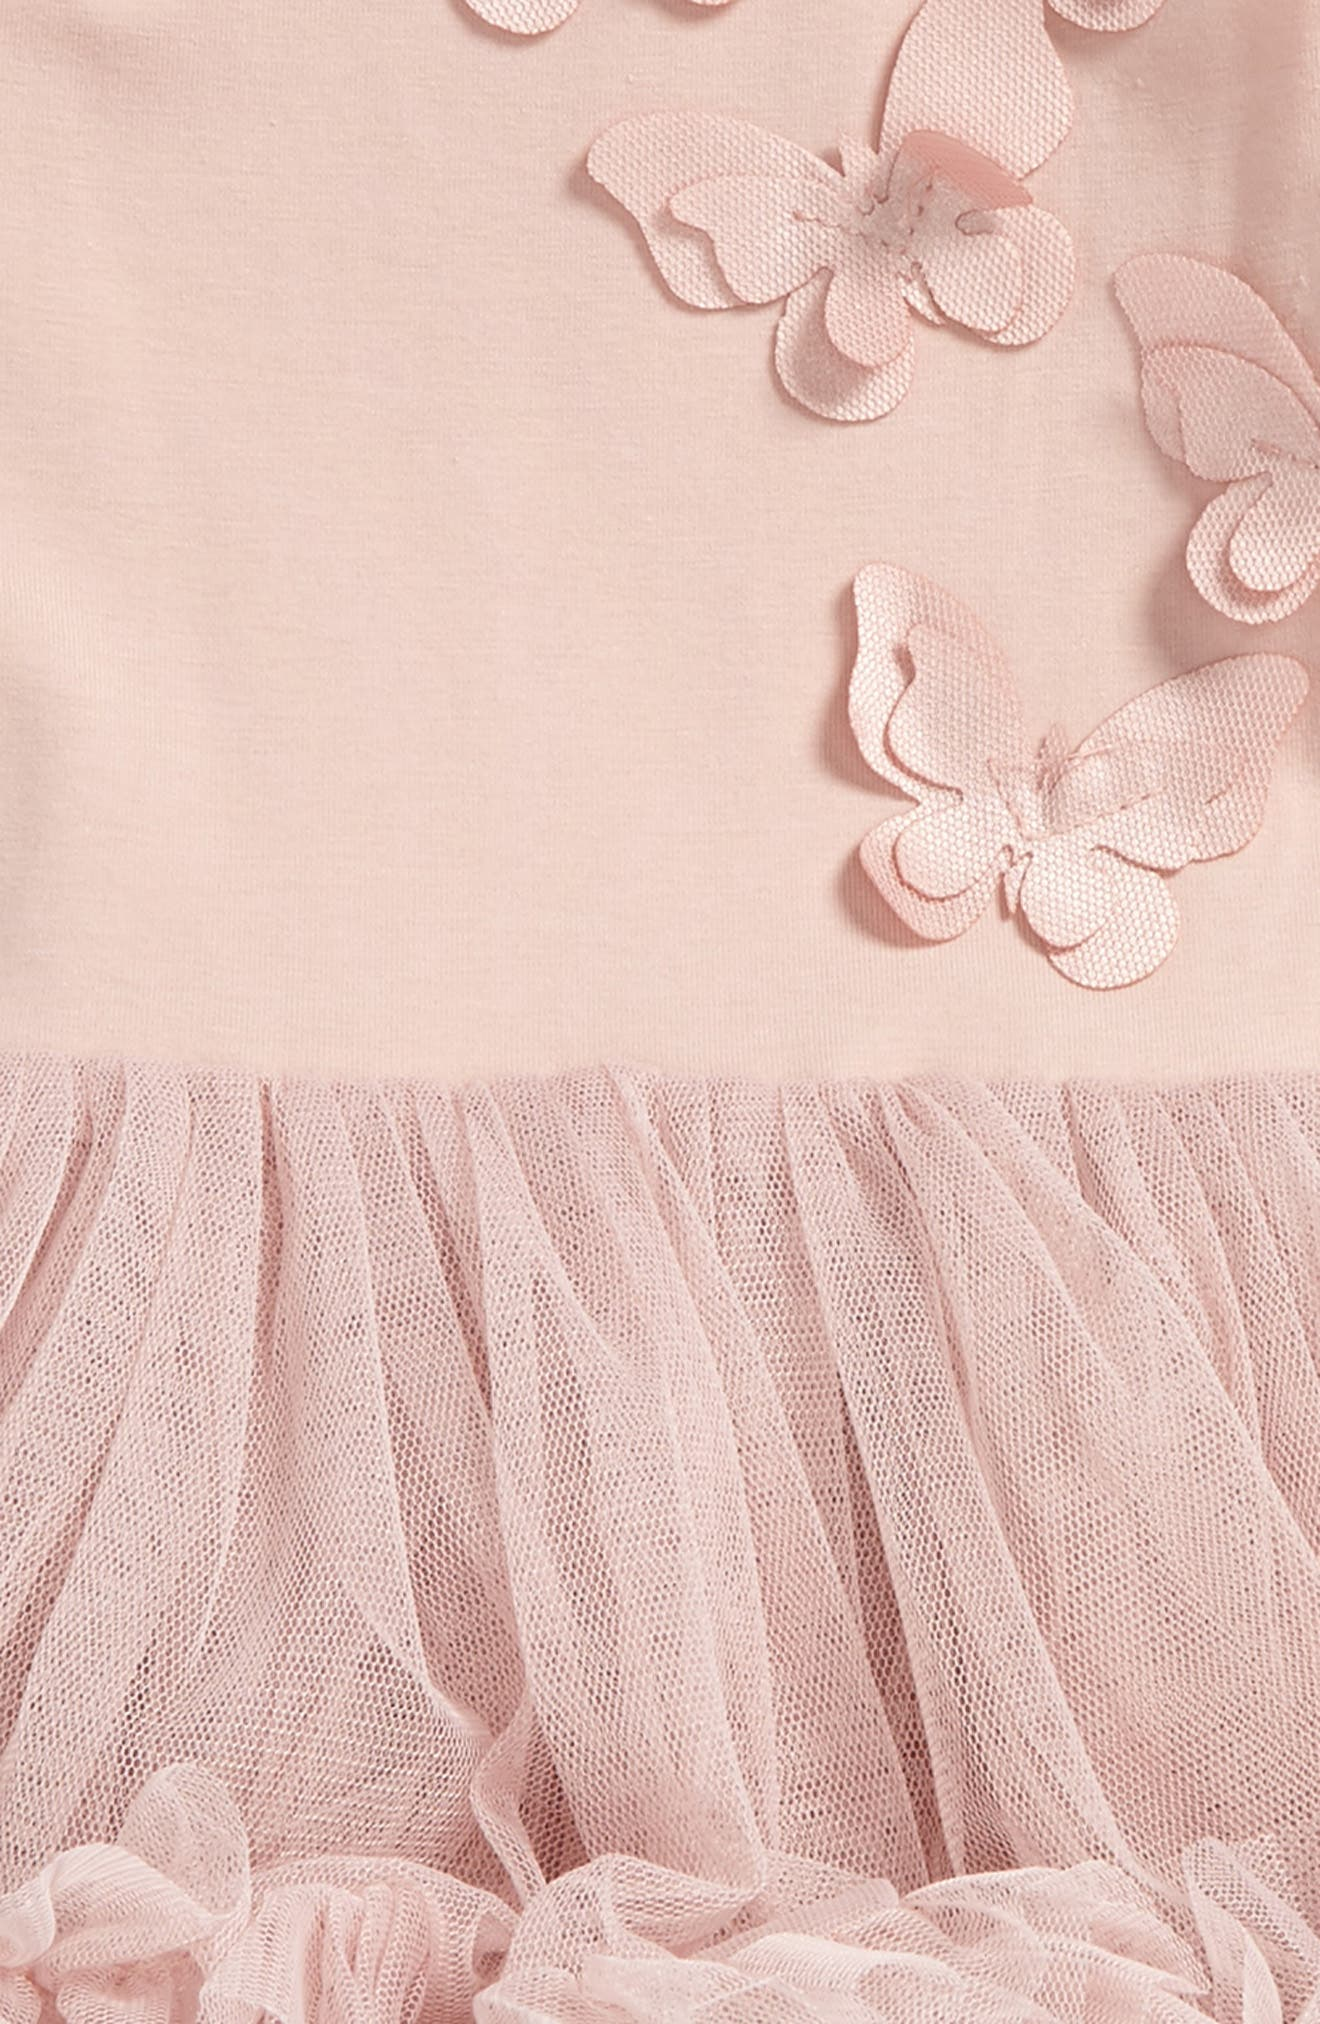 POPATU, Butterfly Pettidress, Main thumbnail 1, color, DUSTY PINK